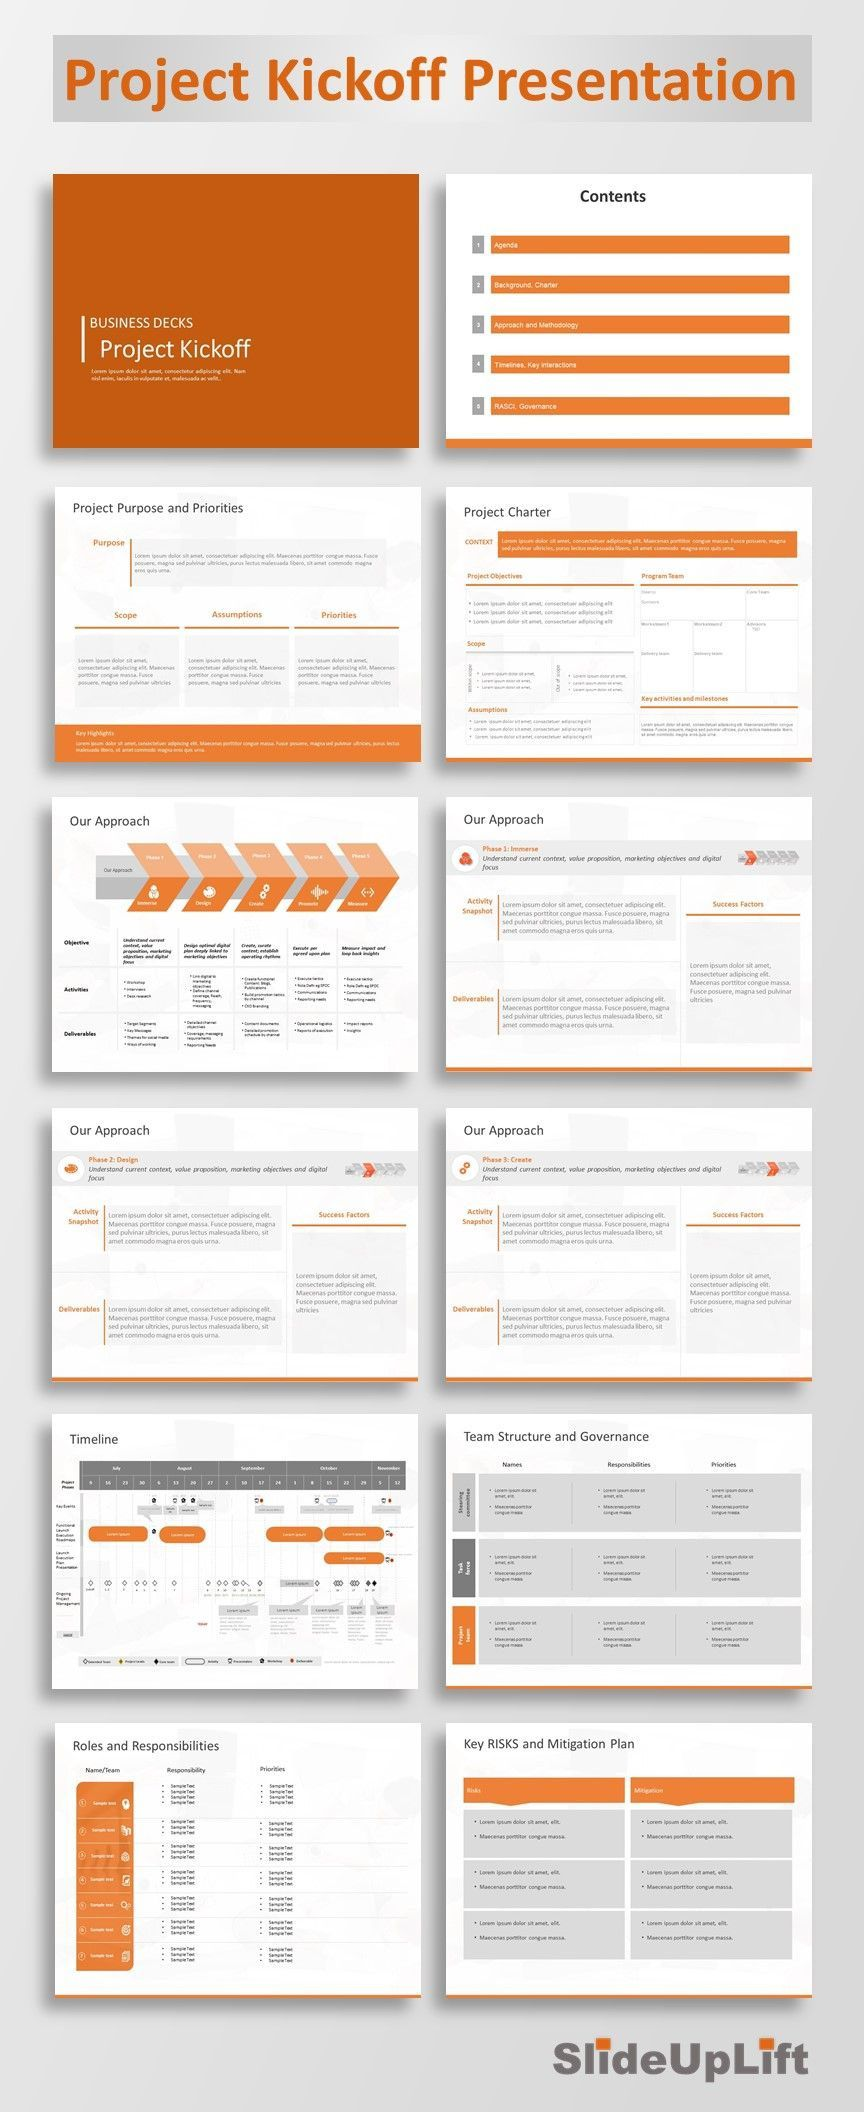 003 Fascinating Project Kick Off Template Ppt Idea  Meeting Management KickoffFull